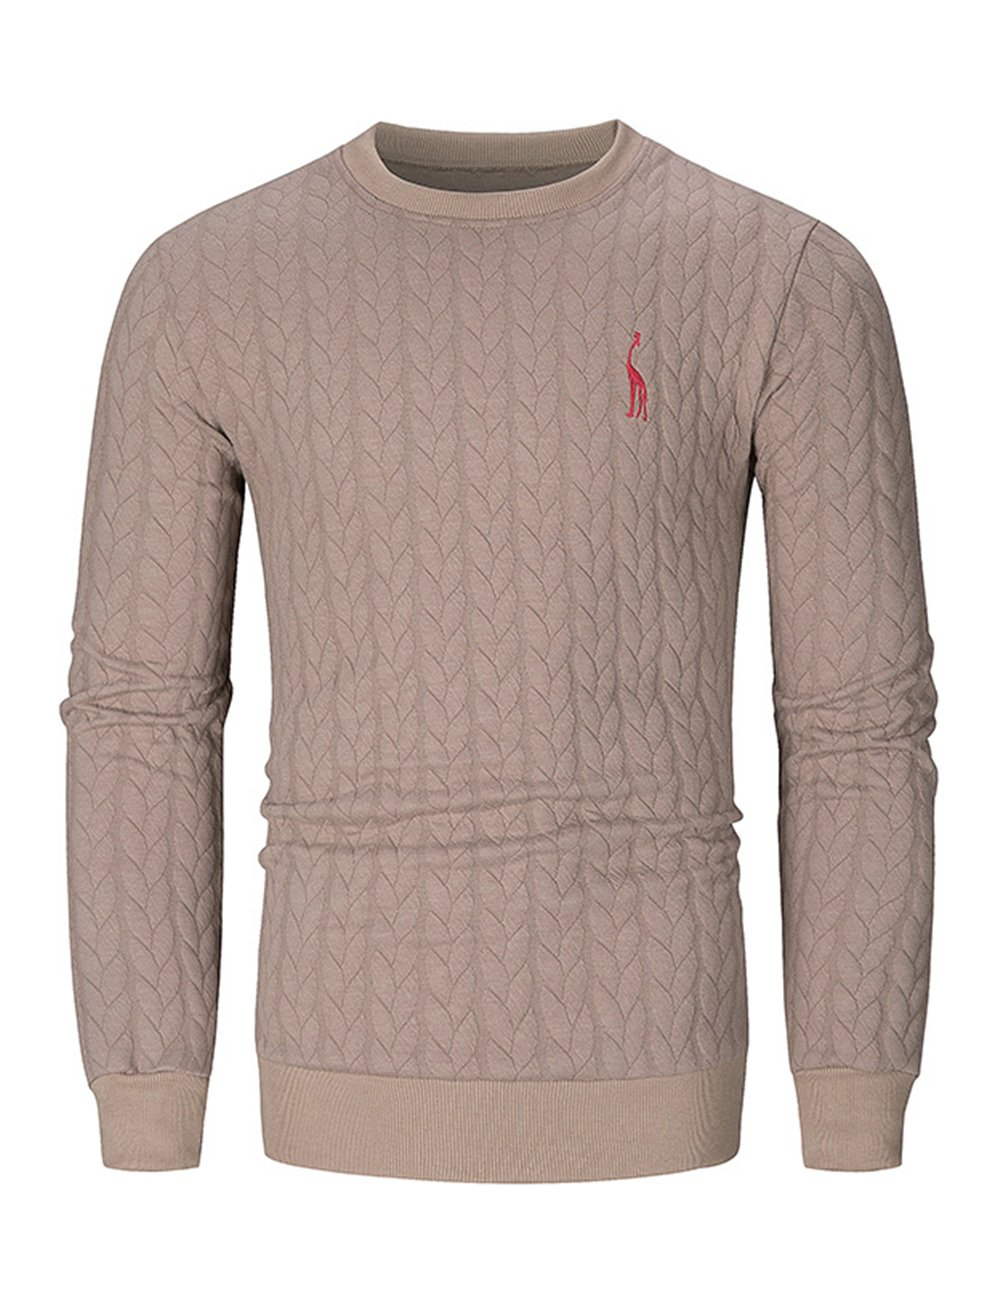 GotoseeU Men's Sweater with Round Neck and Long Sleeves,Soft and Comfortable(Two Colors and Four Sizes)